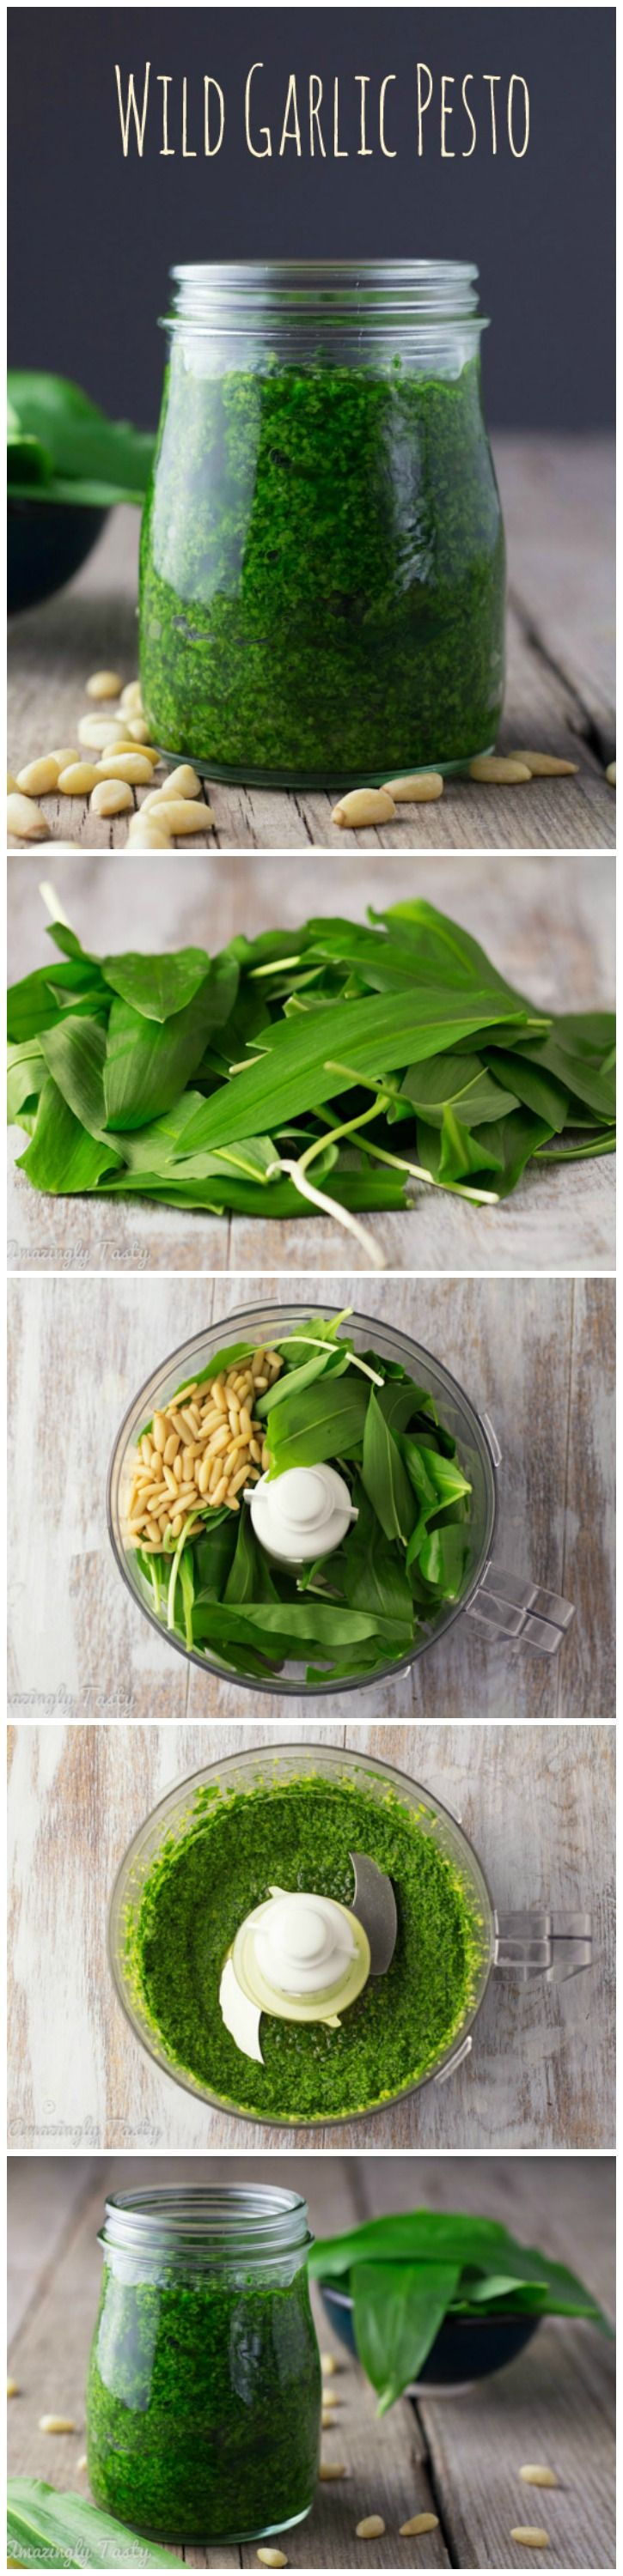 Healthy and delicious wild garlic pesto. It takes only a few minutes to make. You can use it as a pasta sauce, salad dressing, or bread spread.